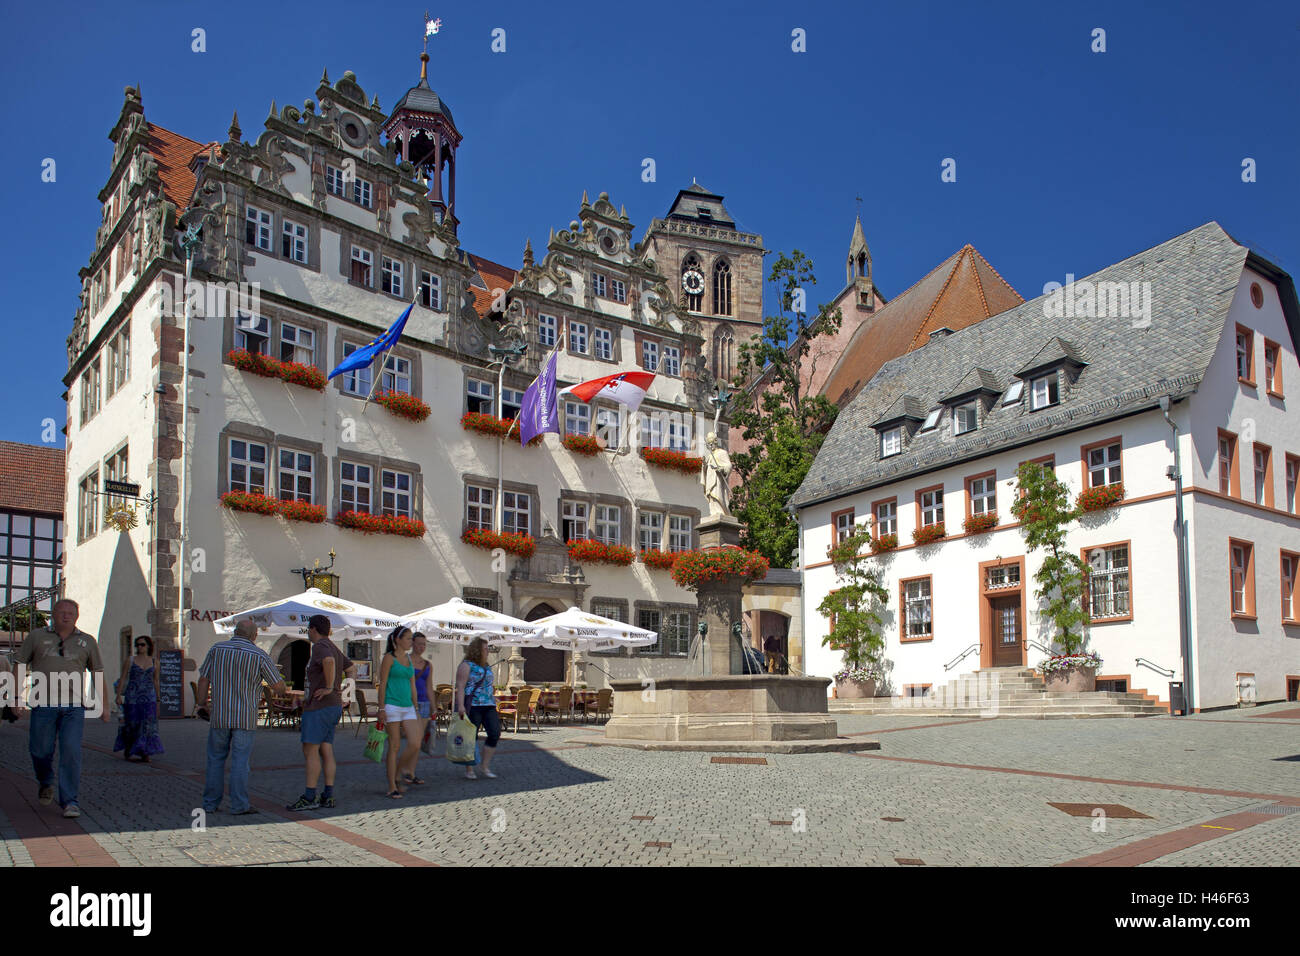 germany hessen northern hessen bad hersfeld old town city hall stock photo 123074843 alamy. Black Bedroom Furniture Sets. Home Design Ideas